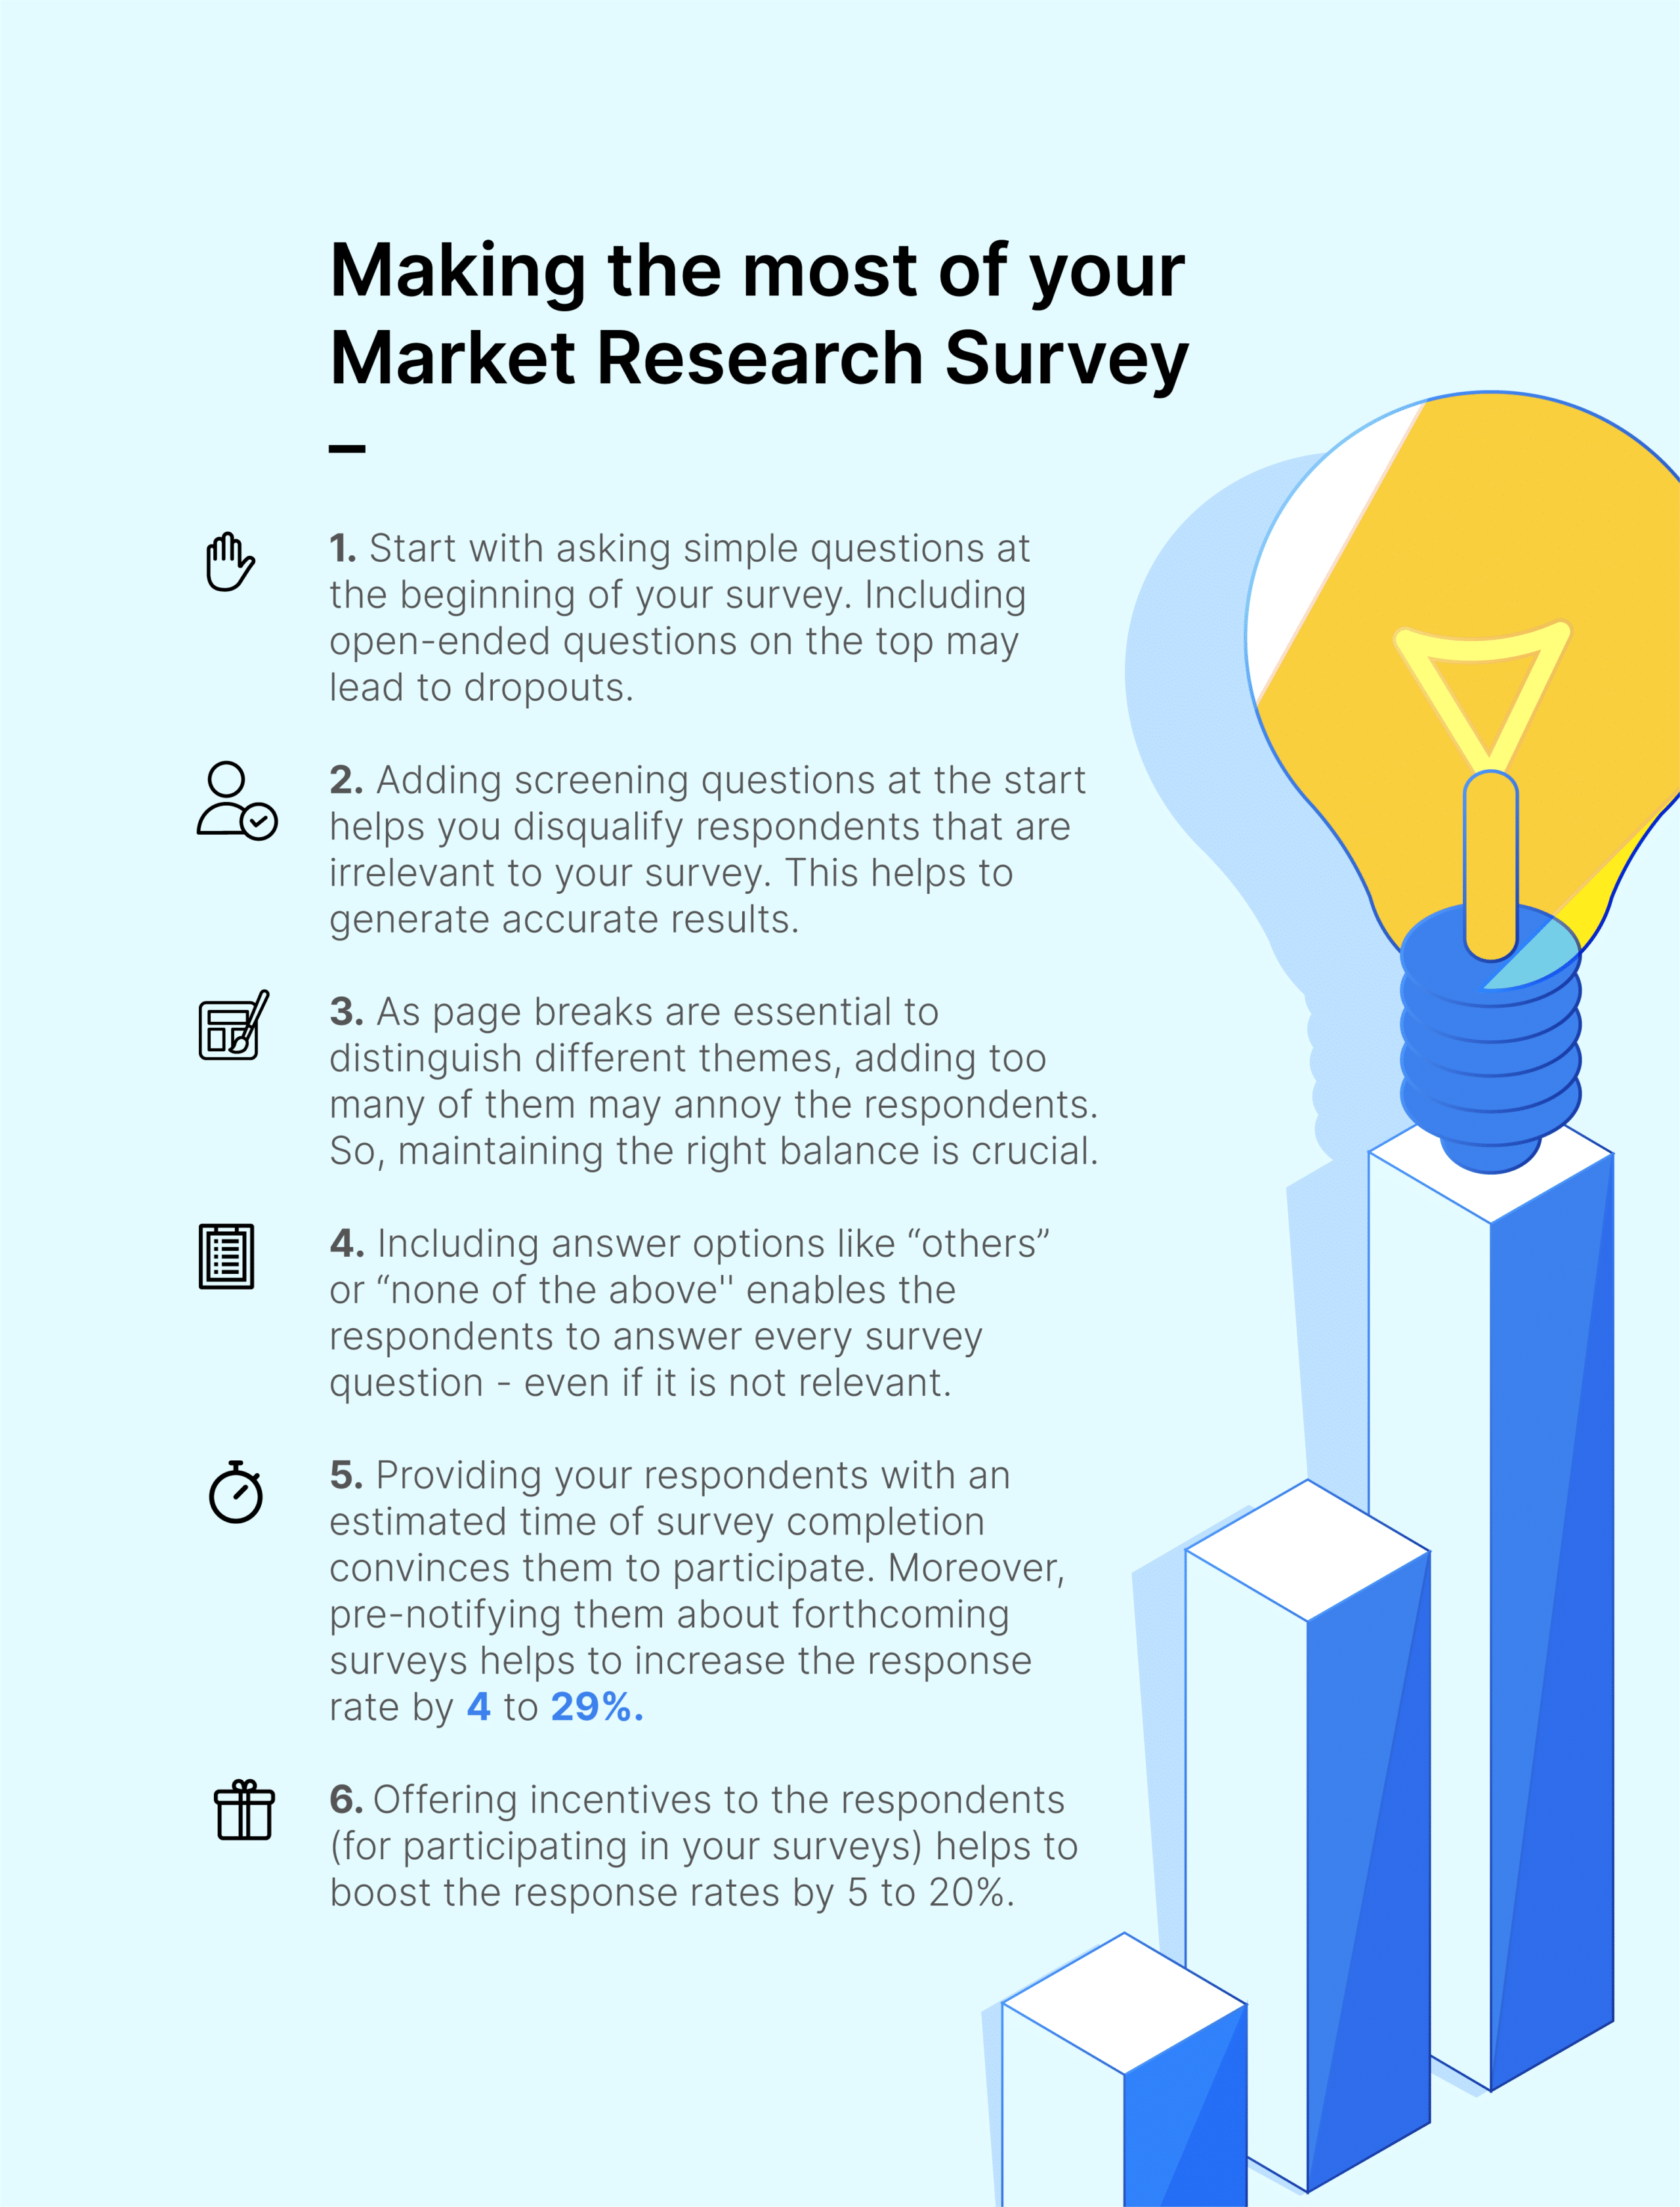 The Voxco Guide to Market Research 07